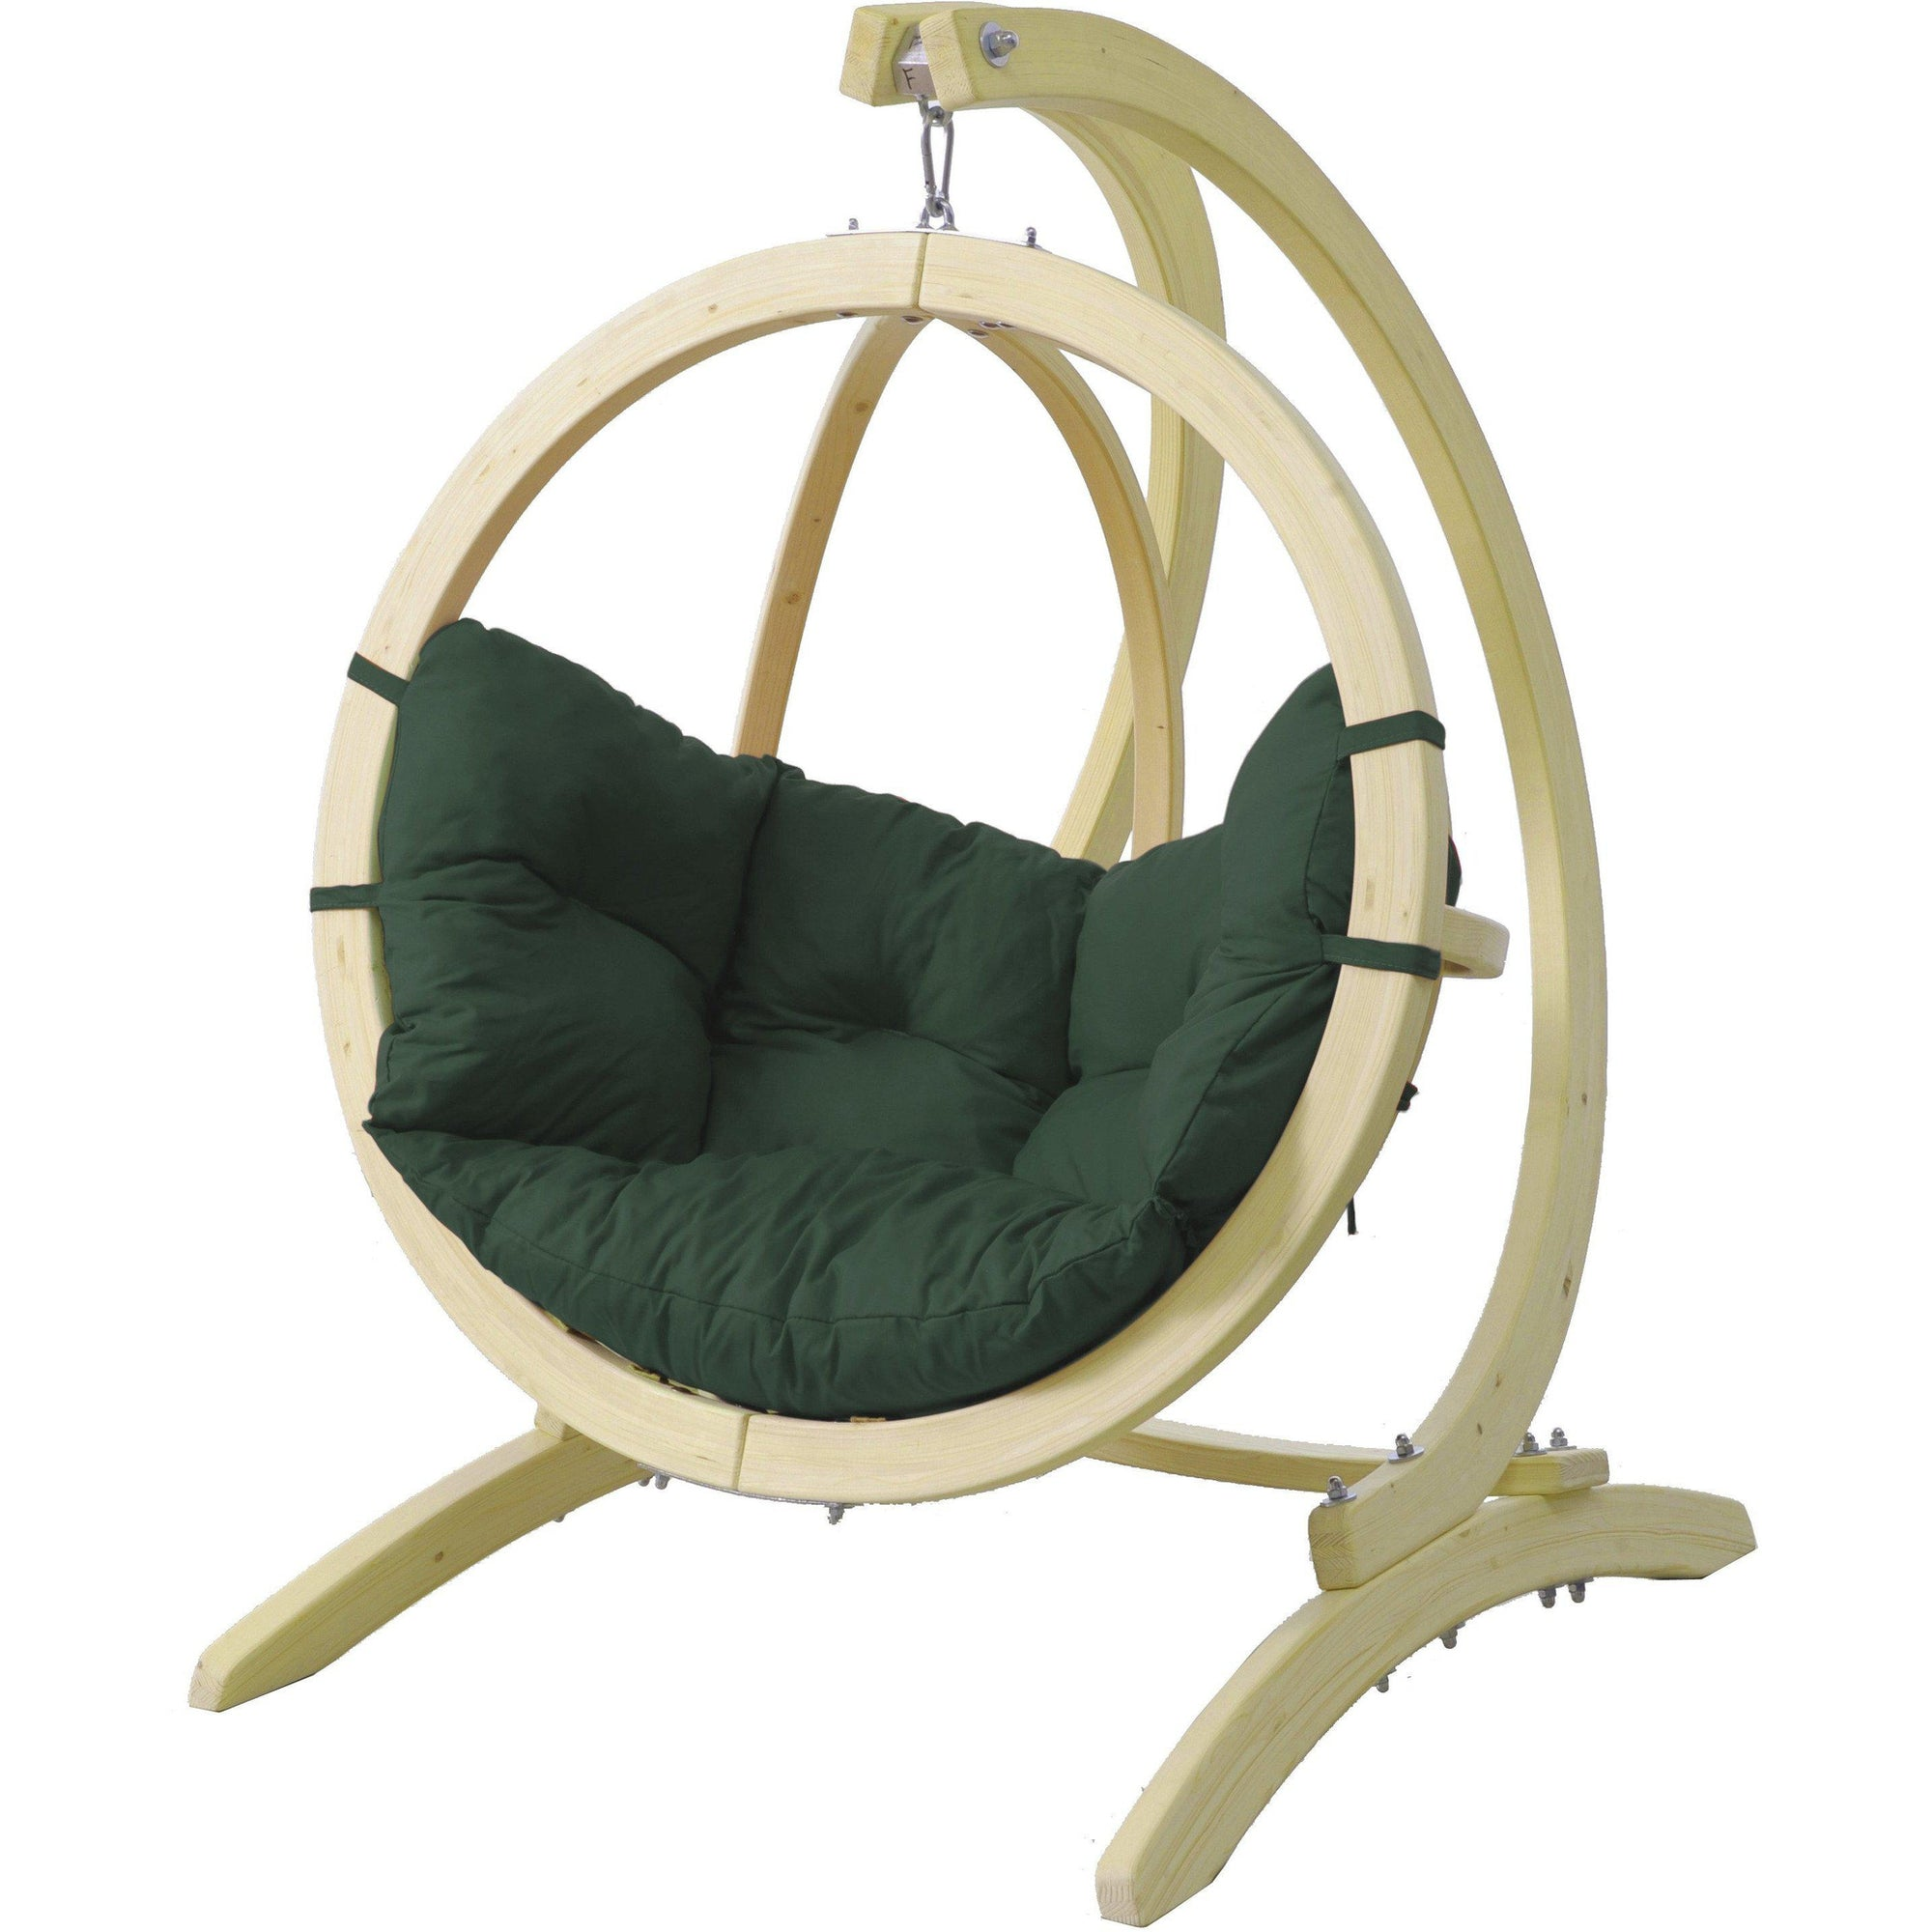 Globo Kid's Chair and Stand, Green Agora, from Byer of Maine